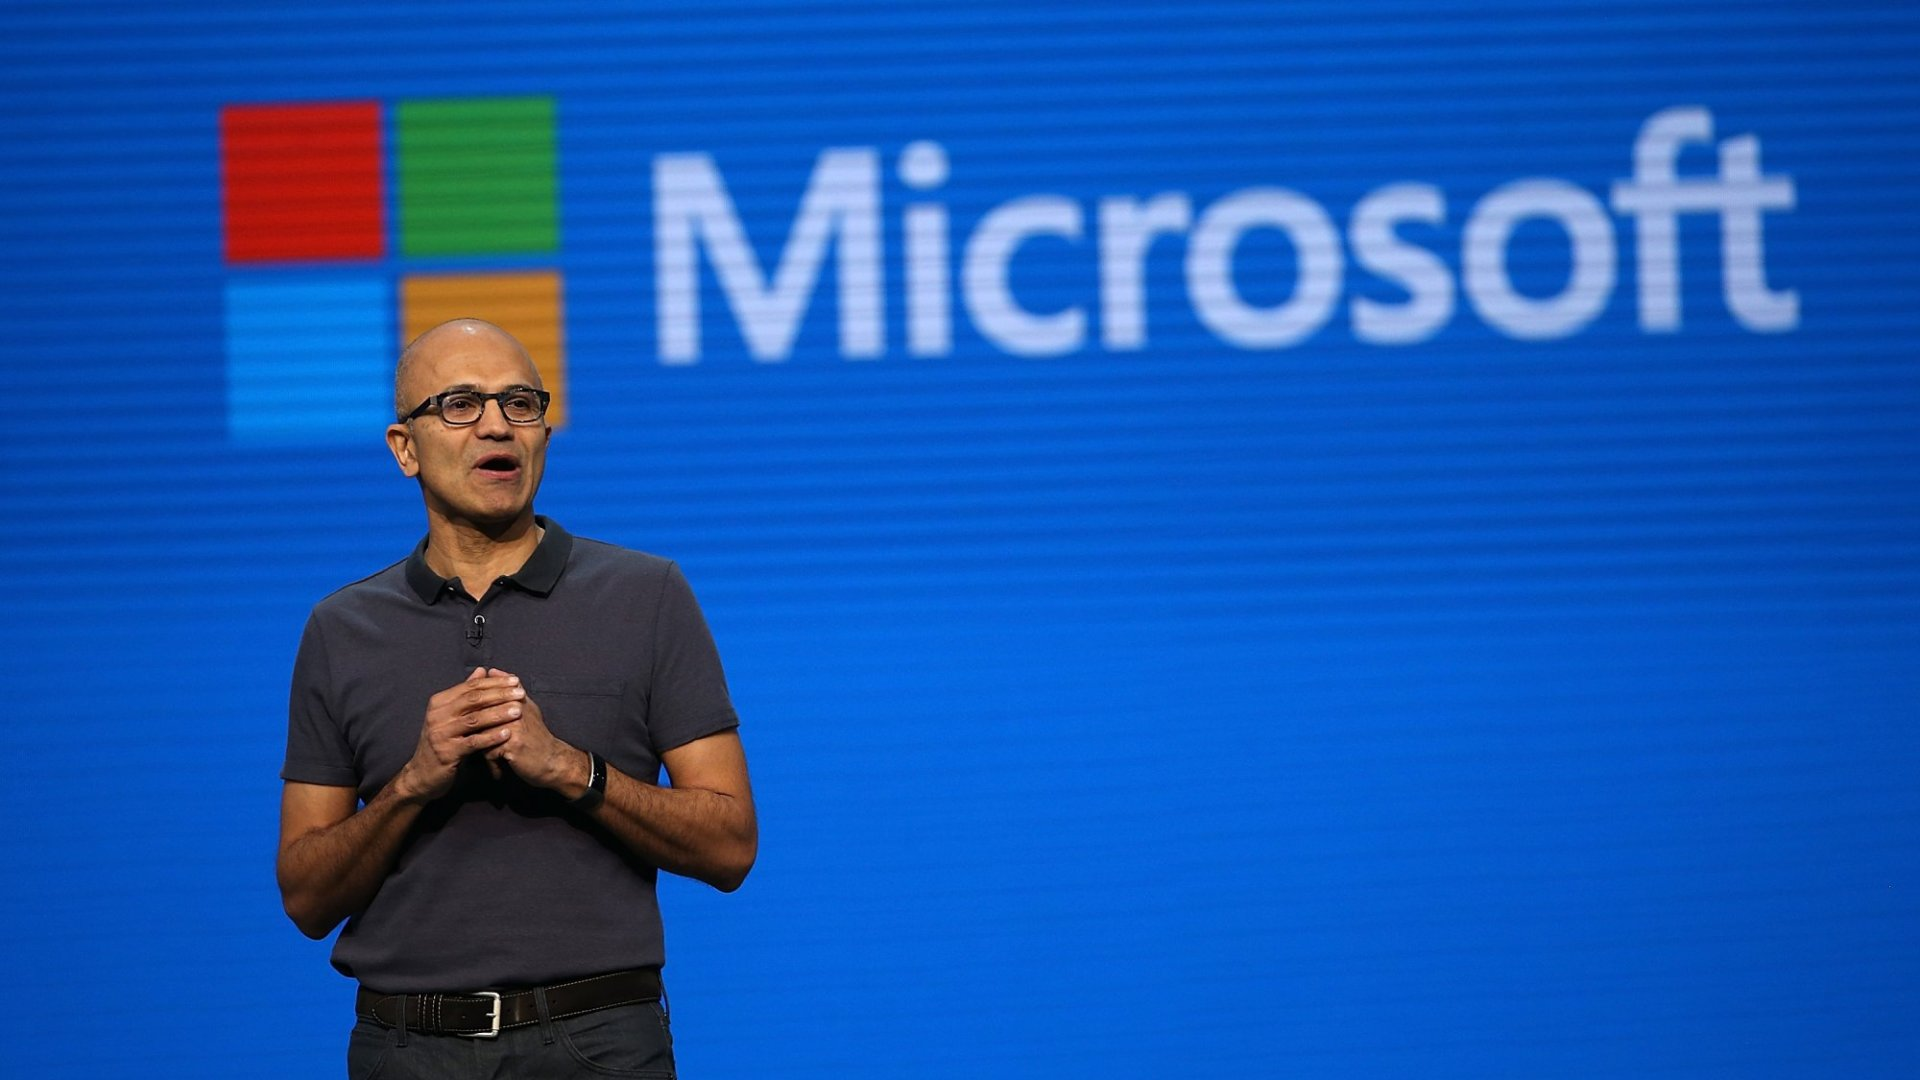 Microsoft CEO Satya Nadella's Leadership Style Is All About Encouraging a 'Growth Mindset'